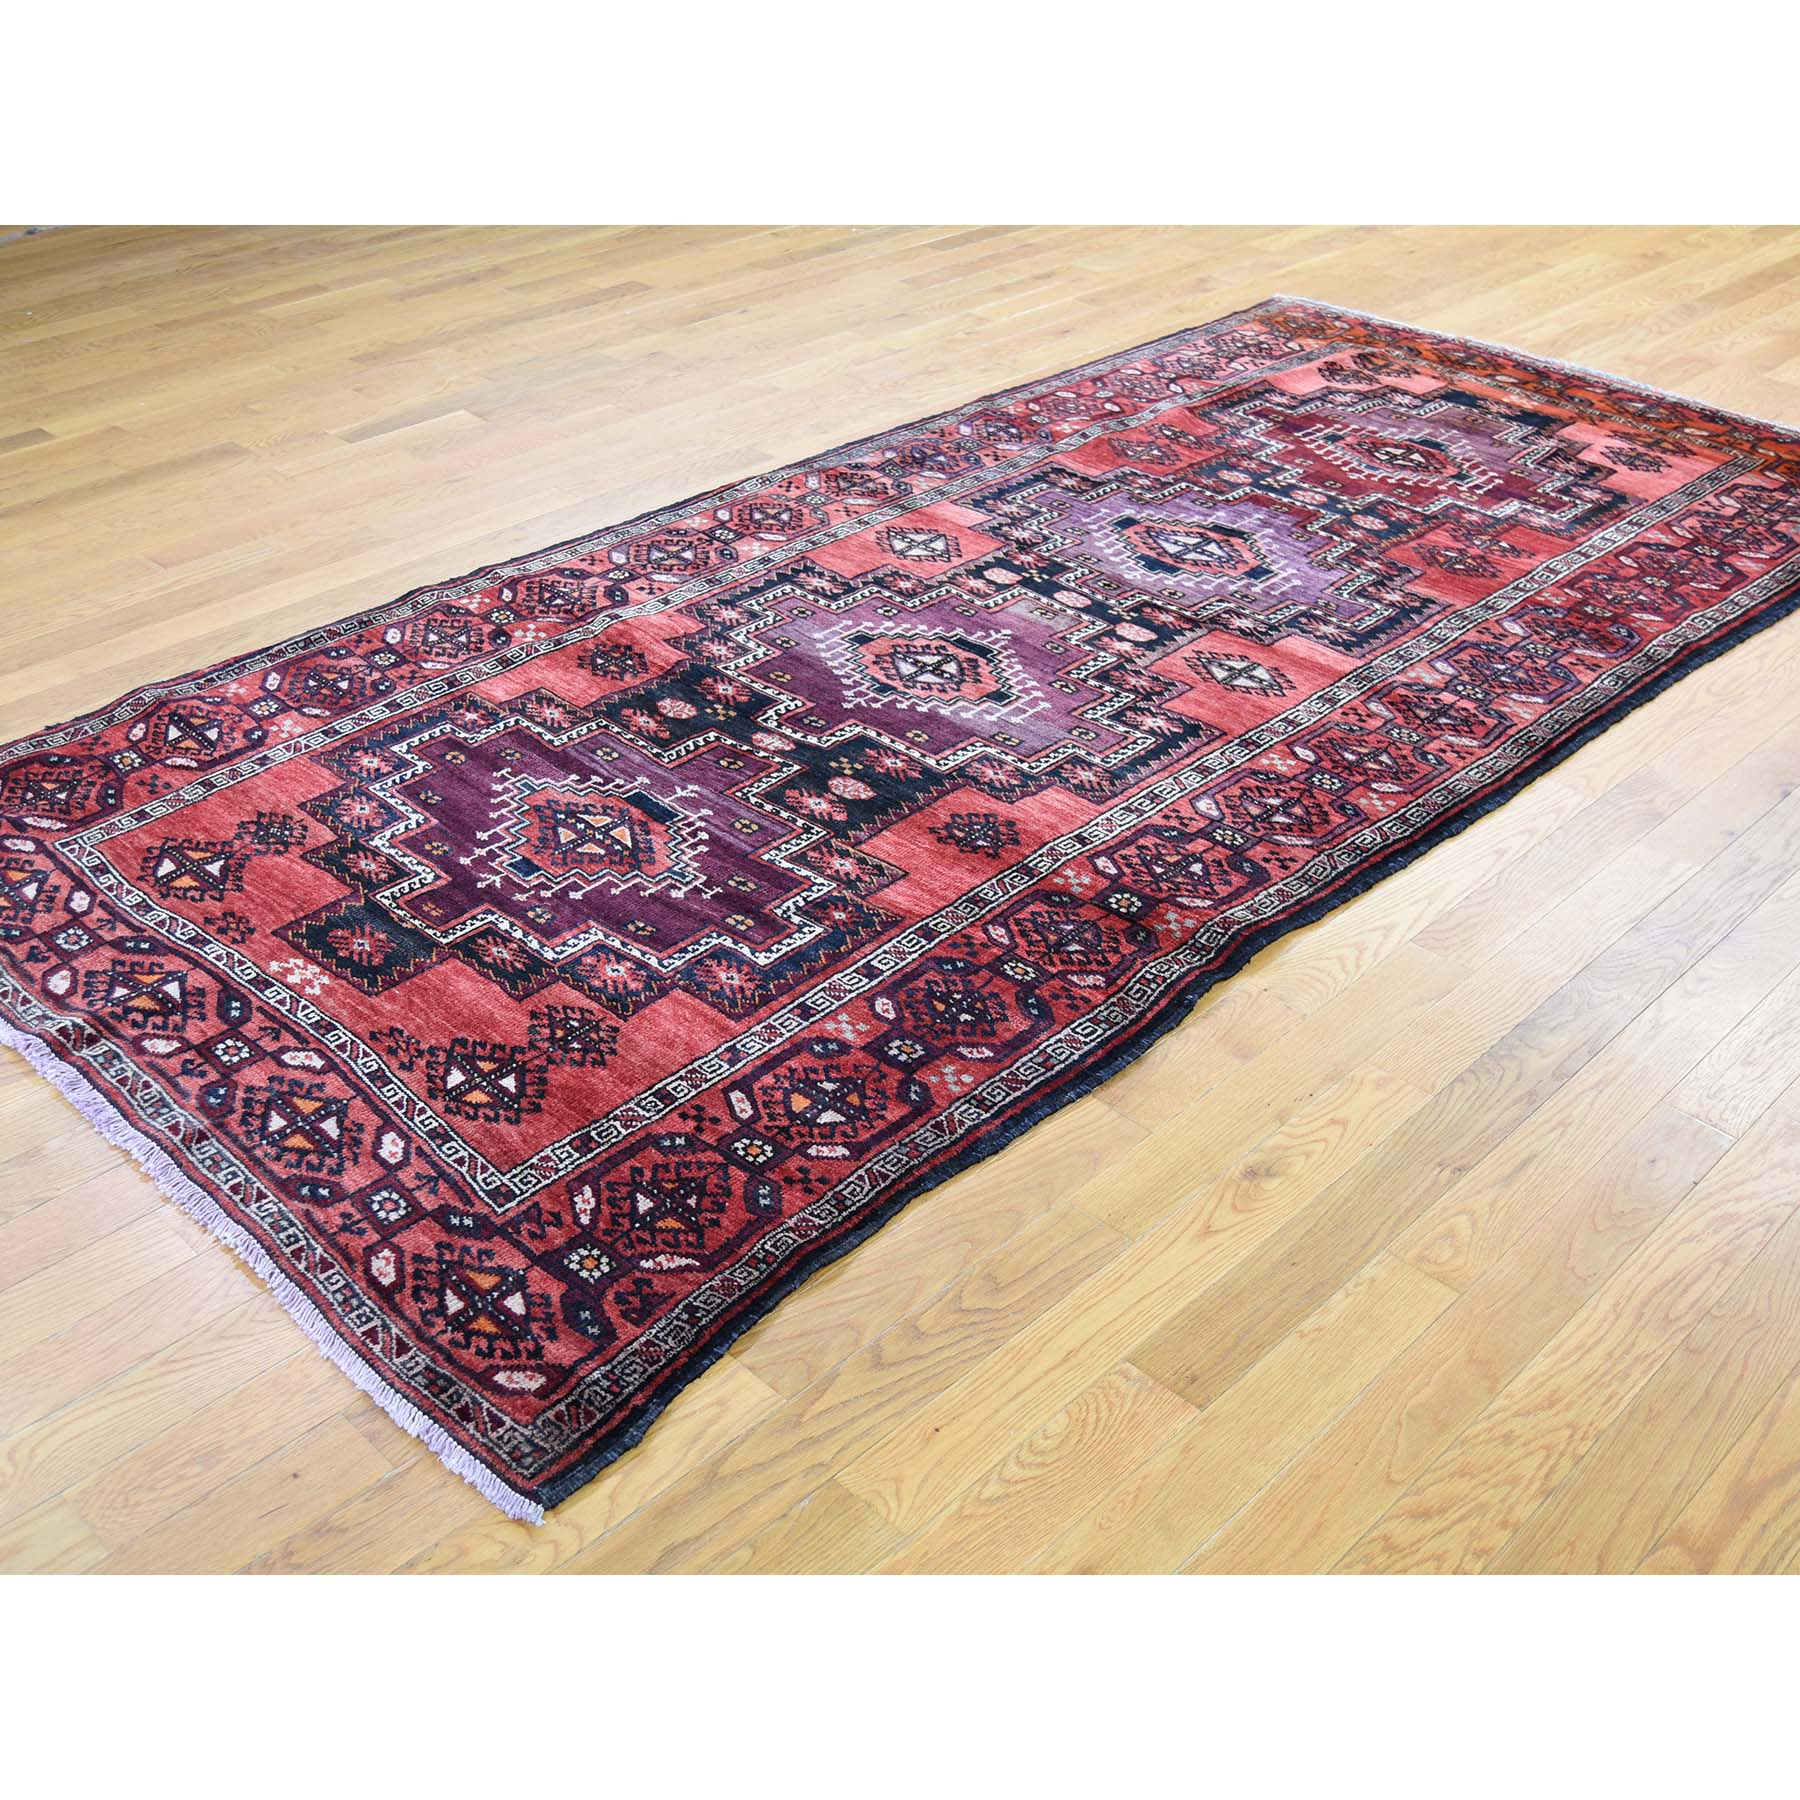 5-x10- Pure Wool Wide Runner Semi Antique Turkoman Village Hand-Knotted Oriental Rug